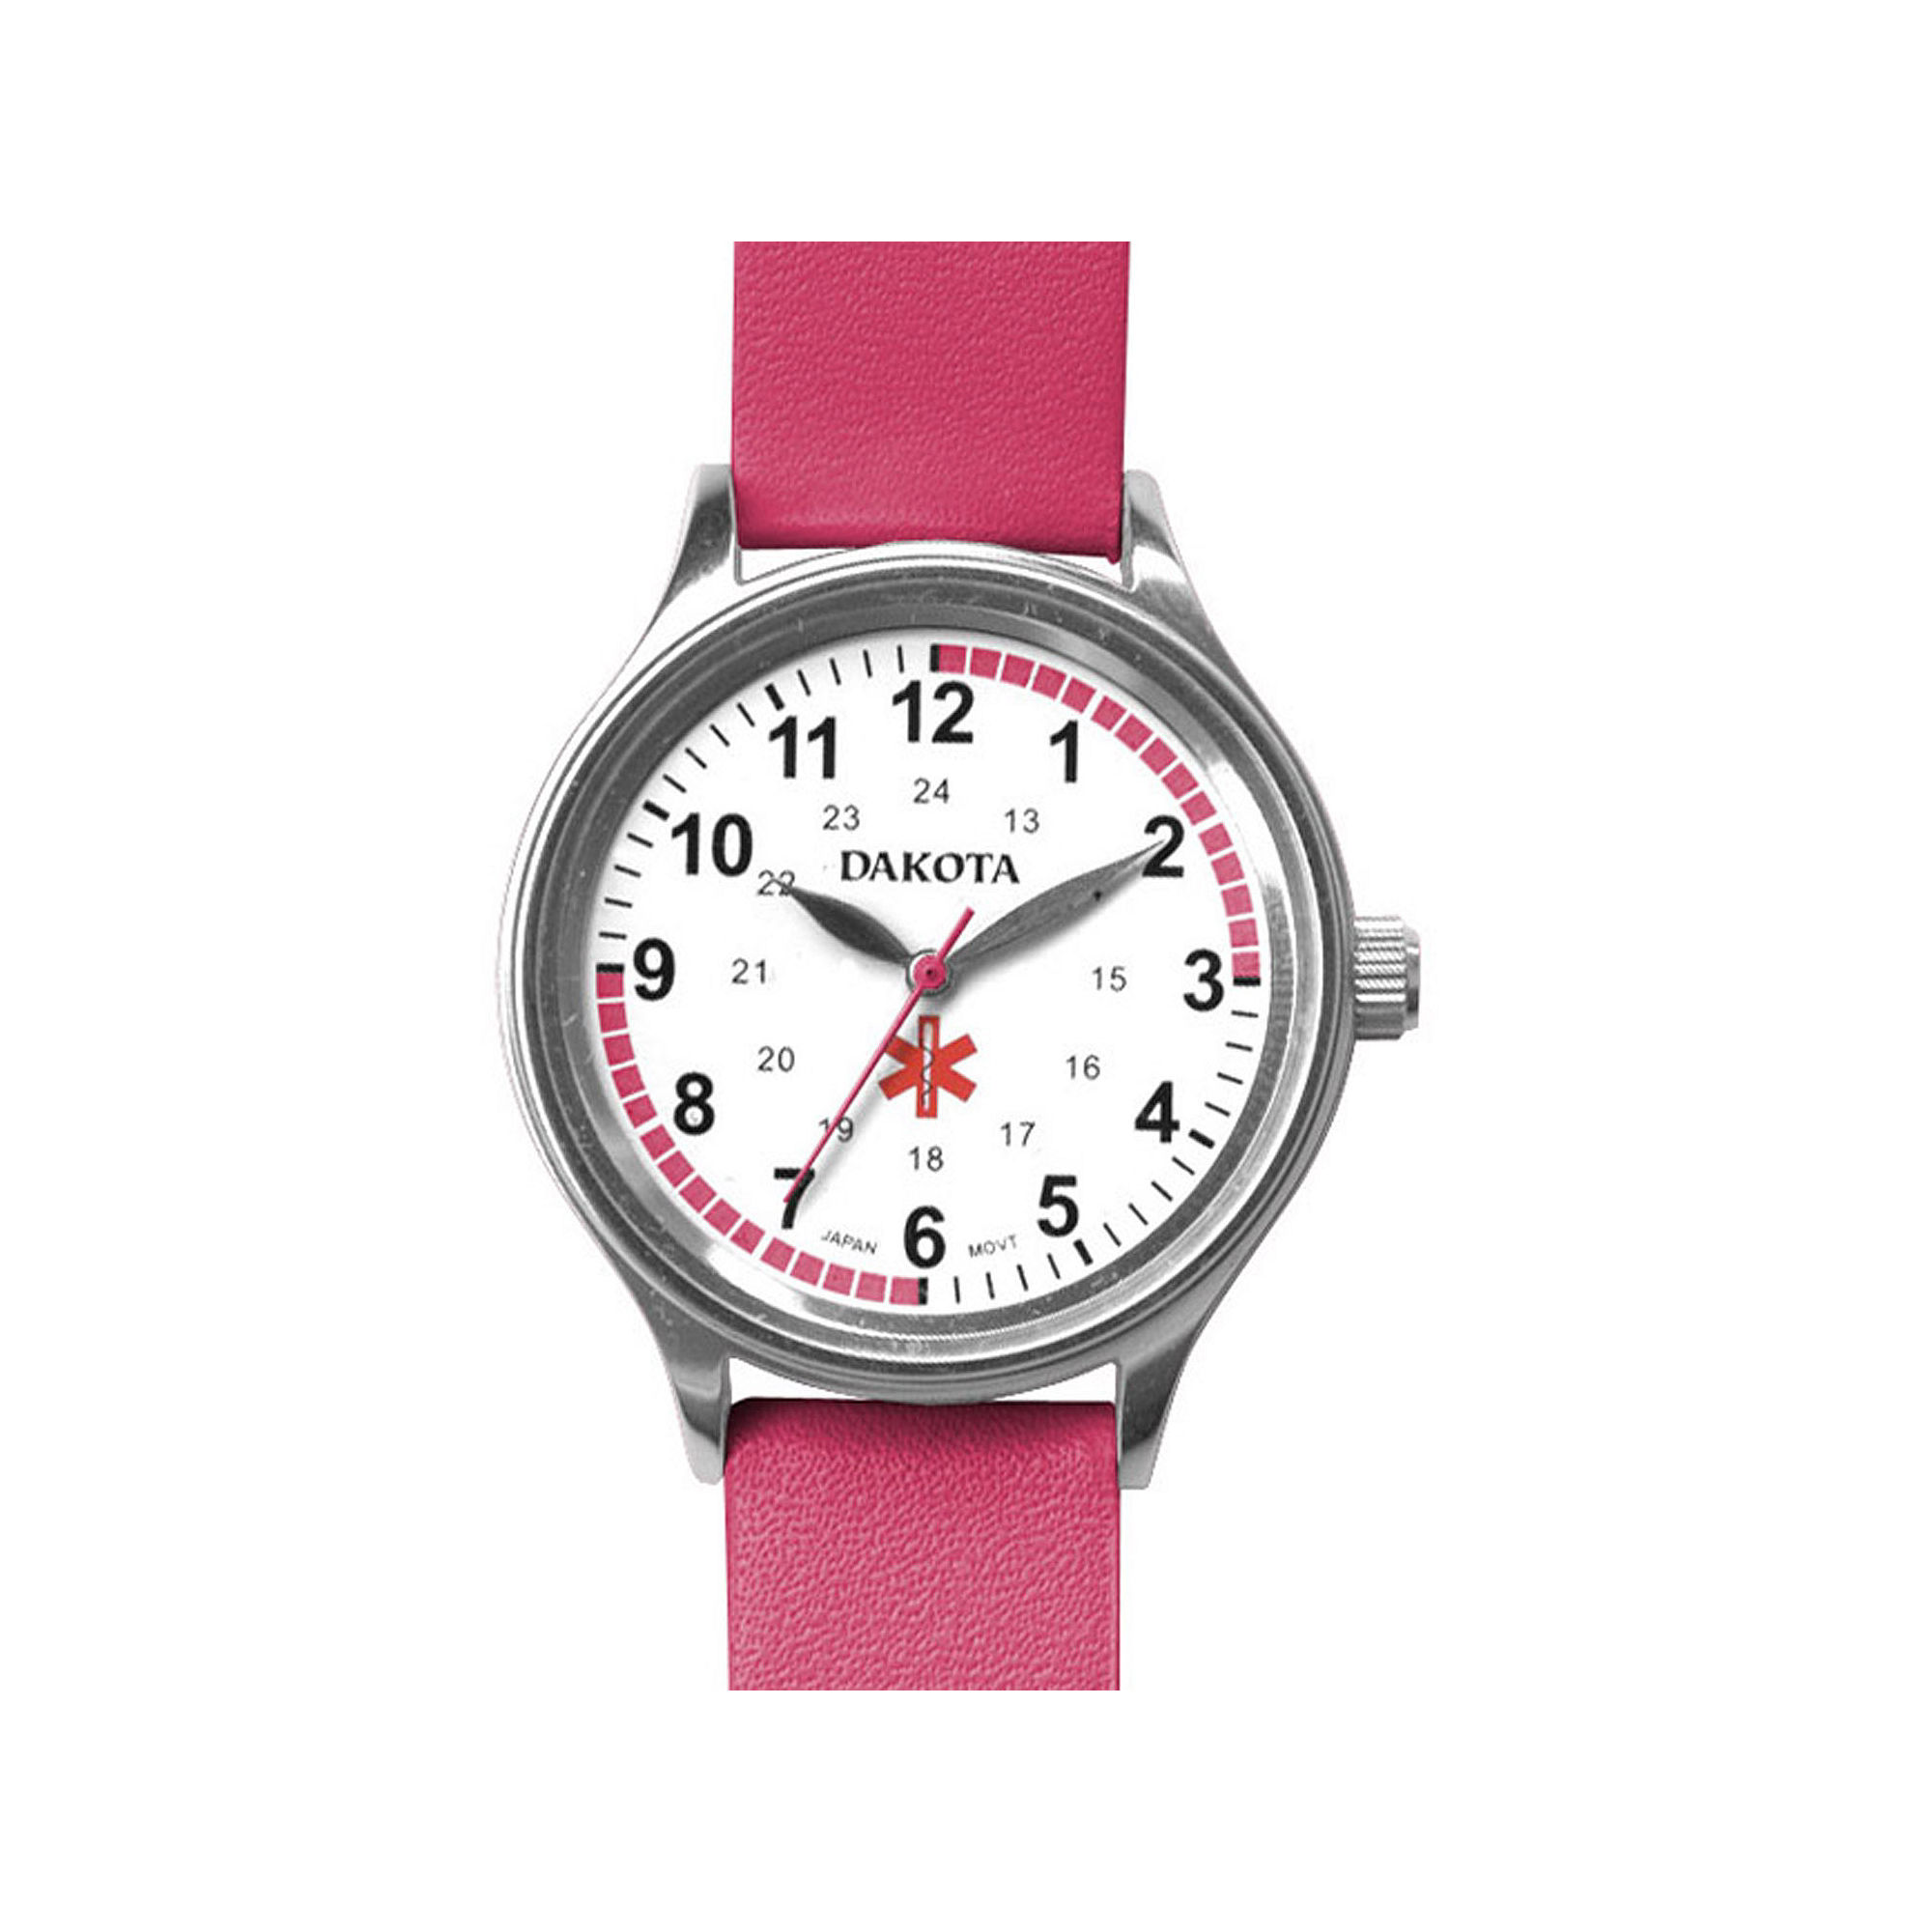 Dakota Women's Fun Color Nurse Watch, Pink